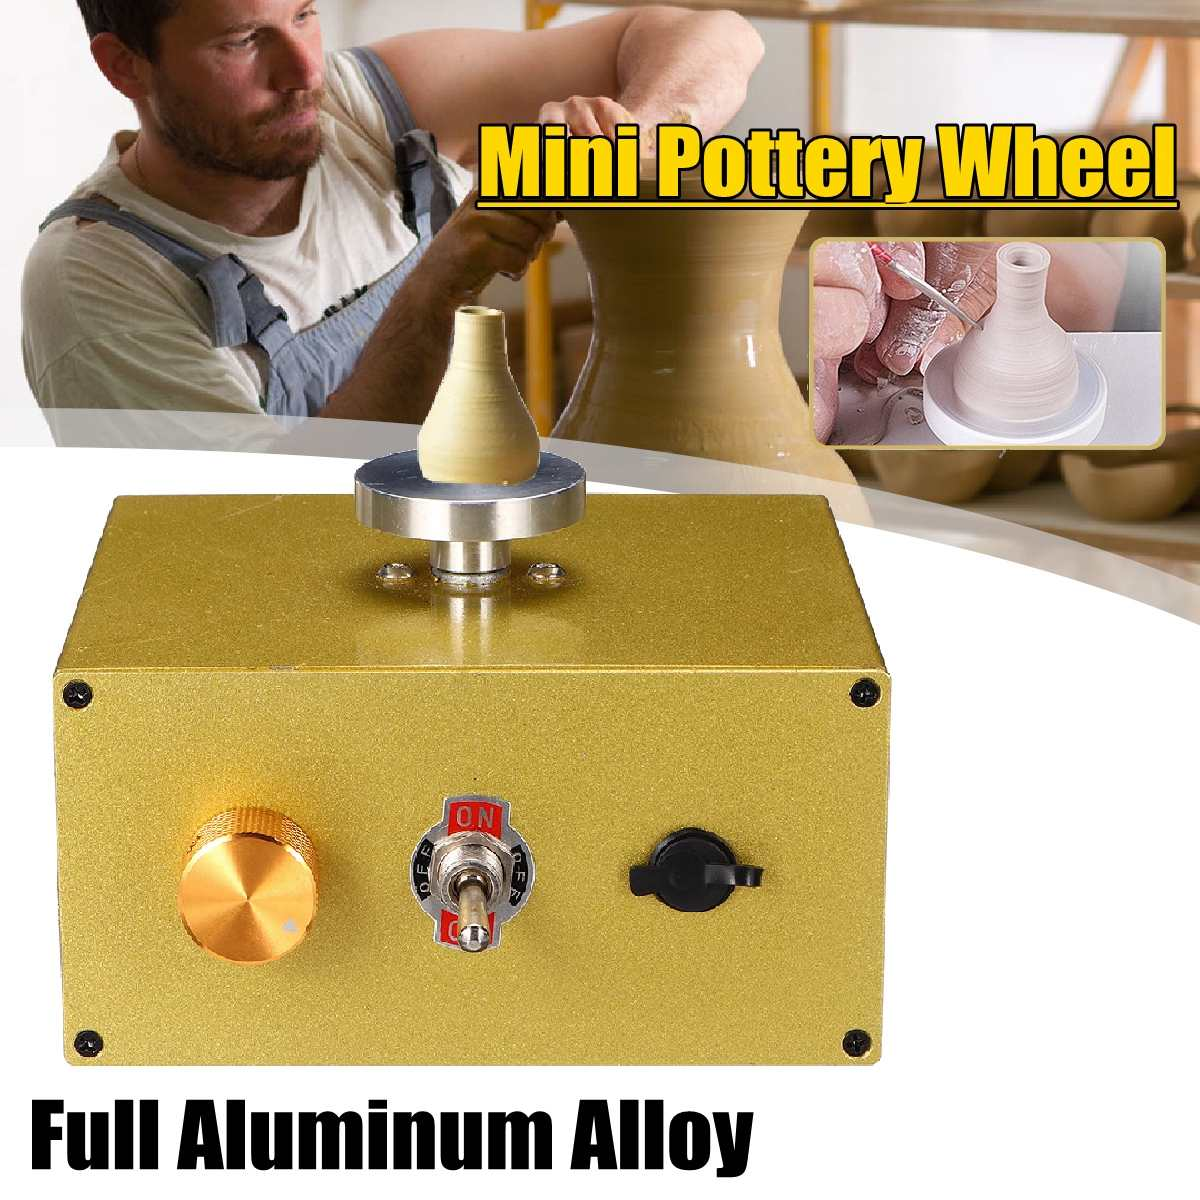 New Aluminum Fingertip Mini Pottery Wheel 4.5cm Turntable Knob Stepless Speed Change Ceramic Machine Pull Machine Plug-in